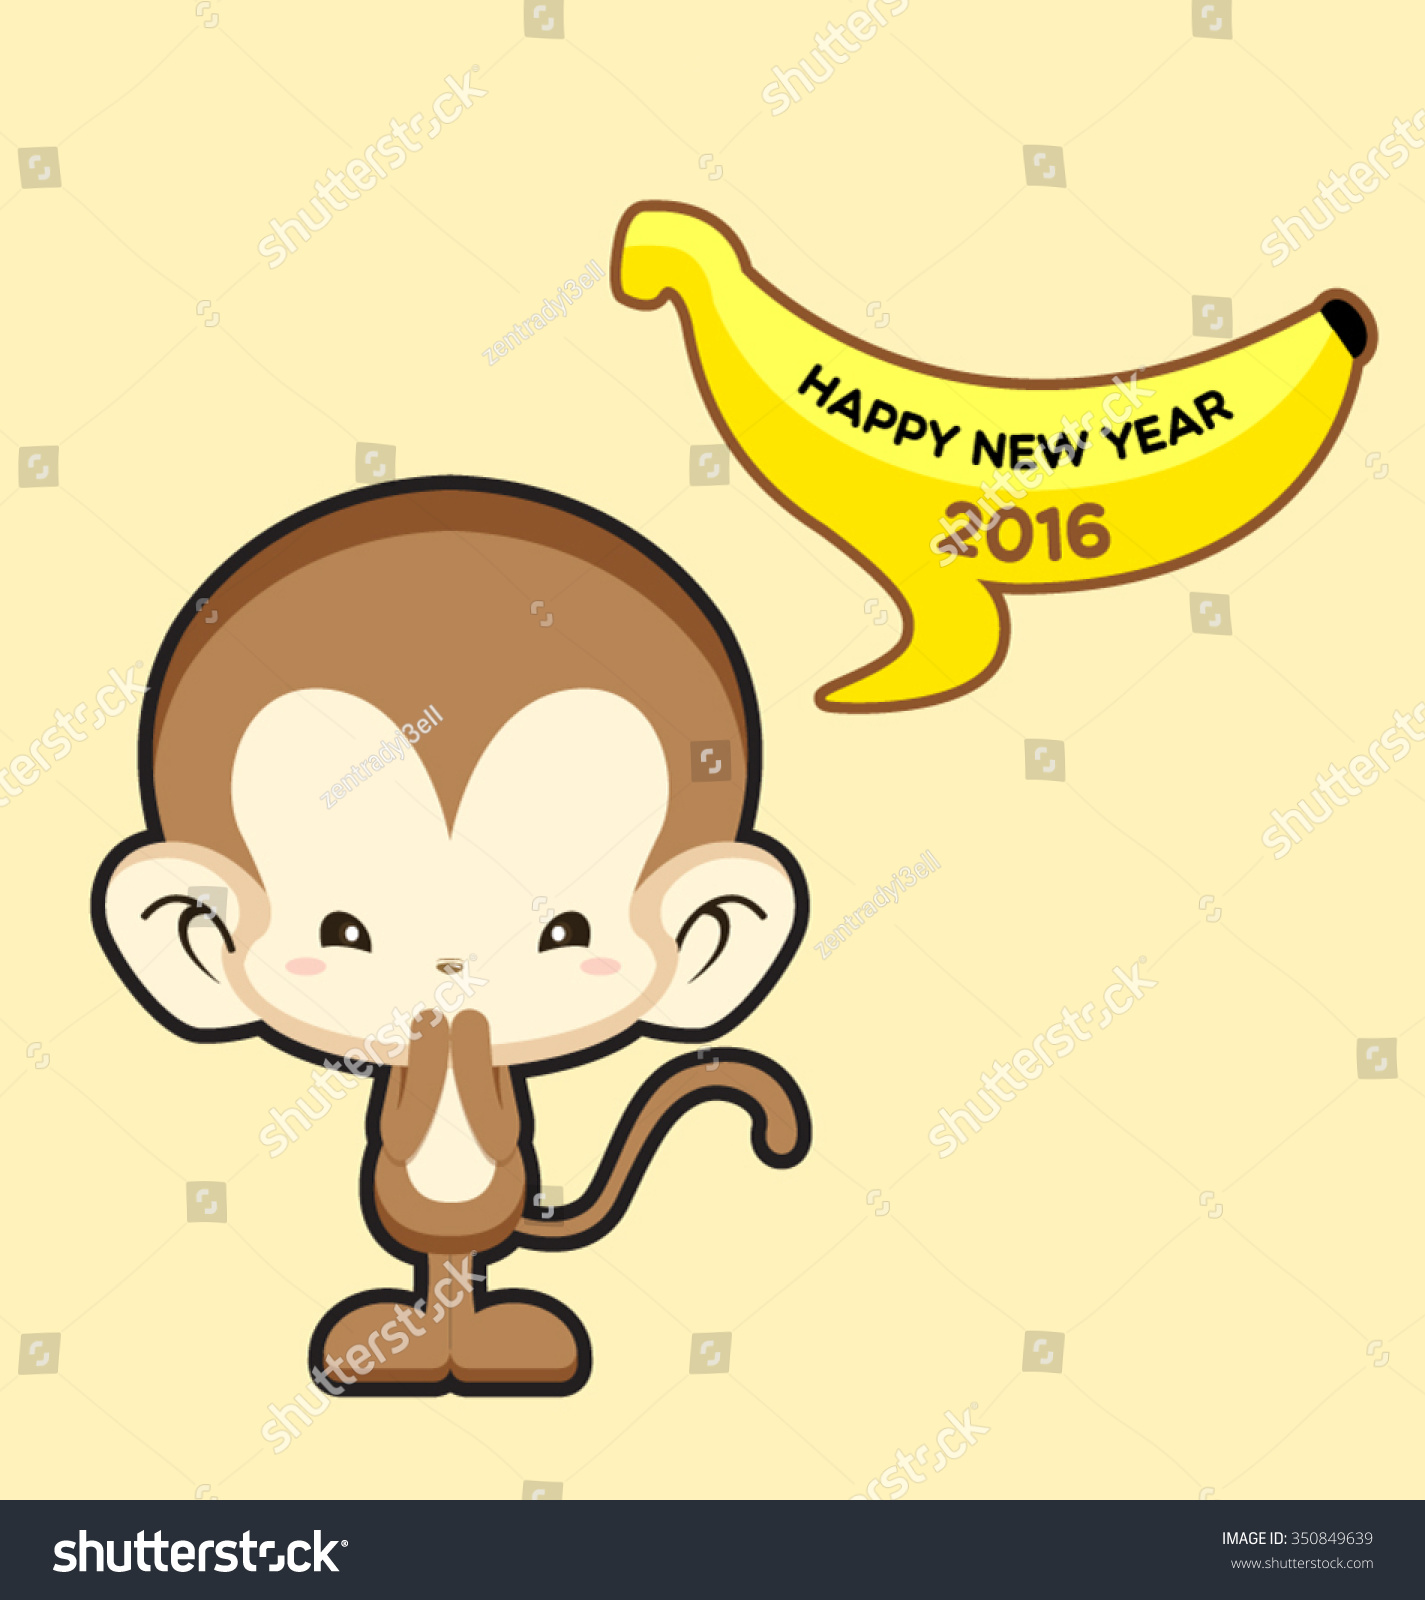 happy new year greeting card with cute monkey saying happy new year 2016 vector illustration